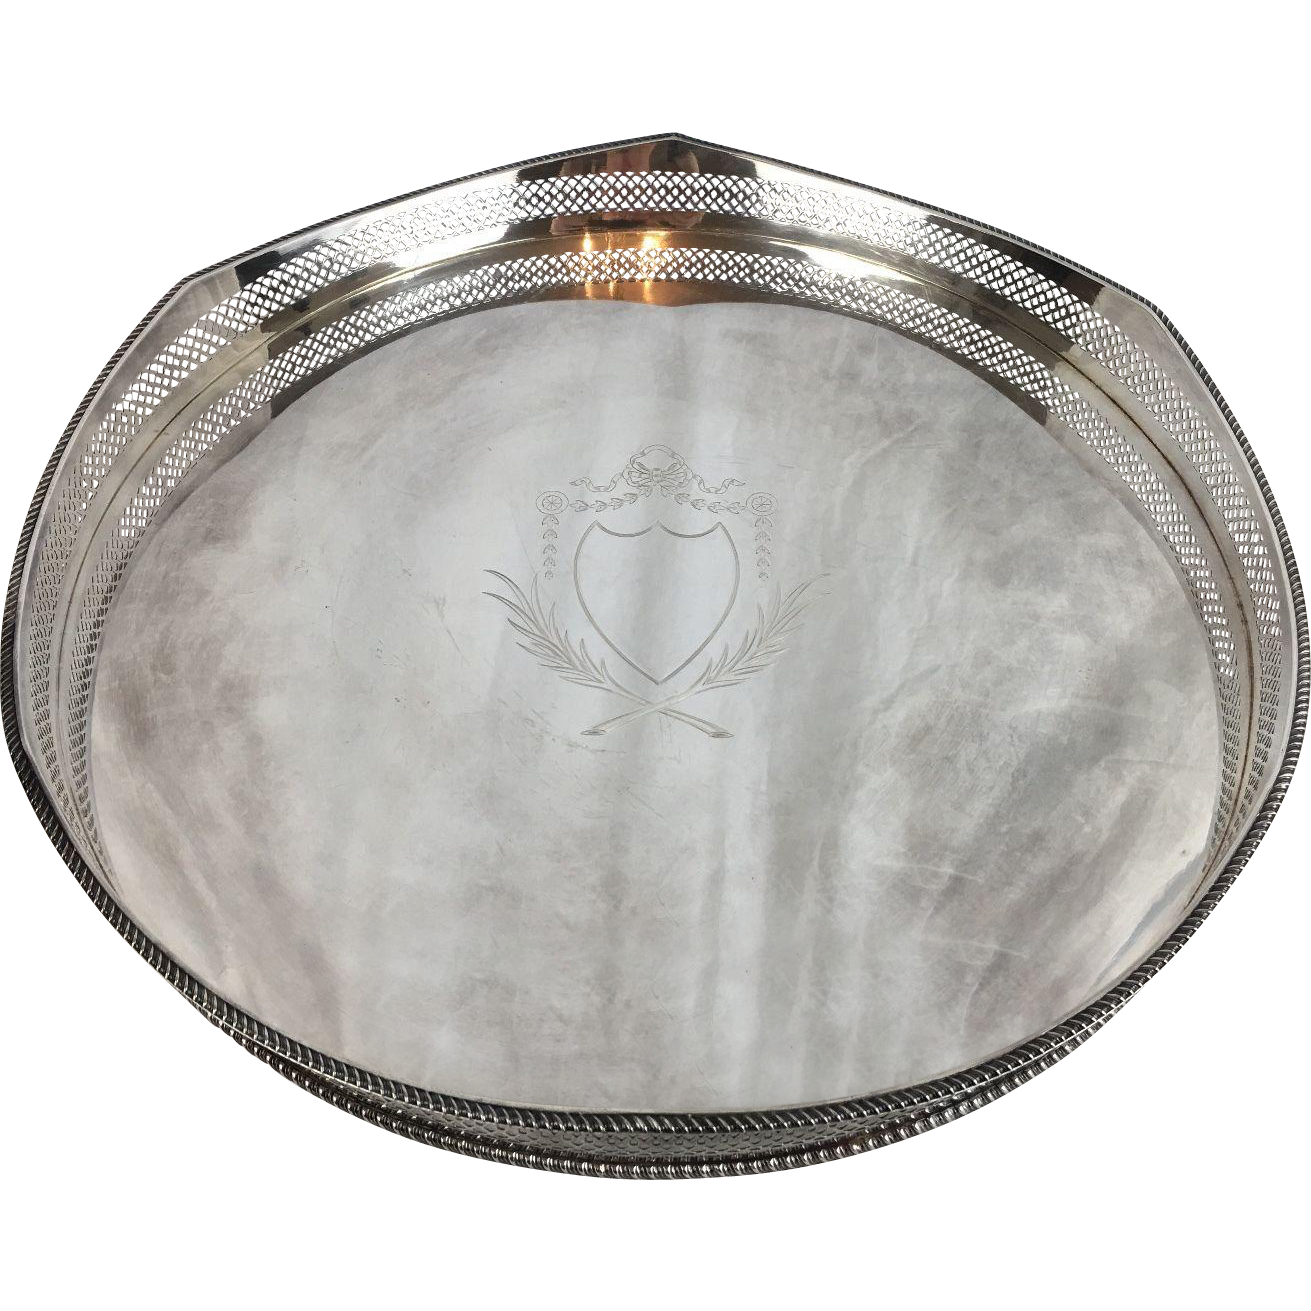 Large Pierced and Engraved English Silverplate Gallery Tray Circa 1920, Circle